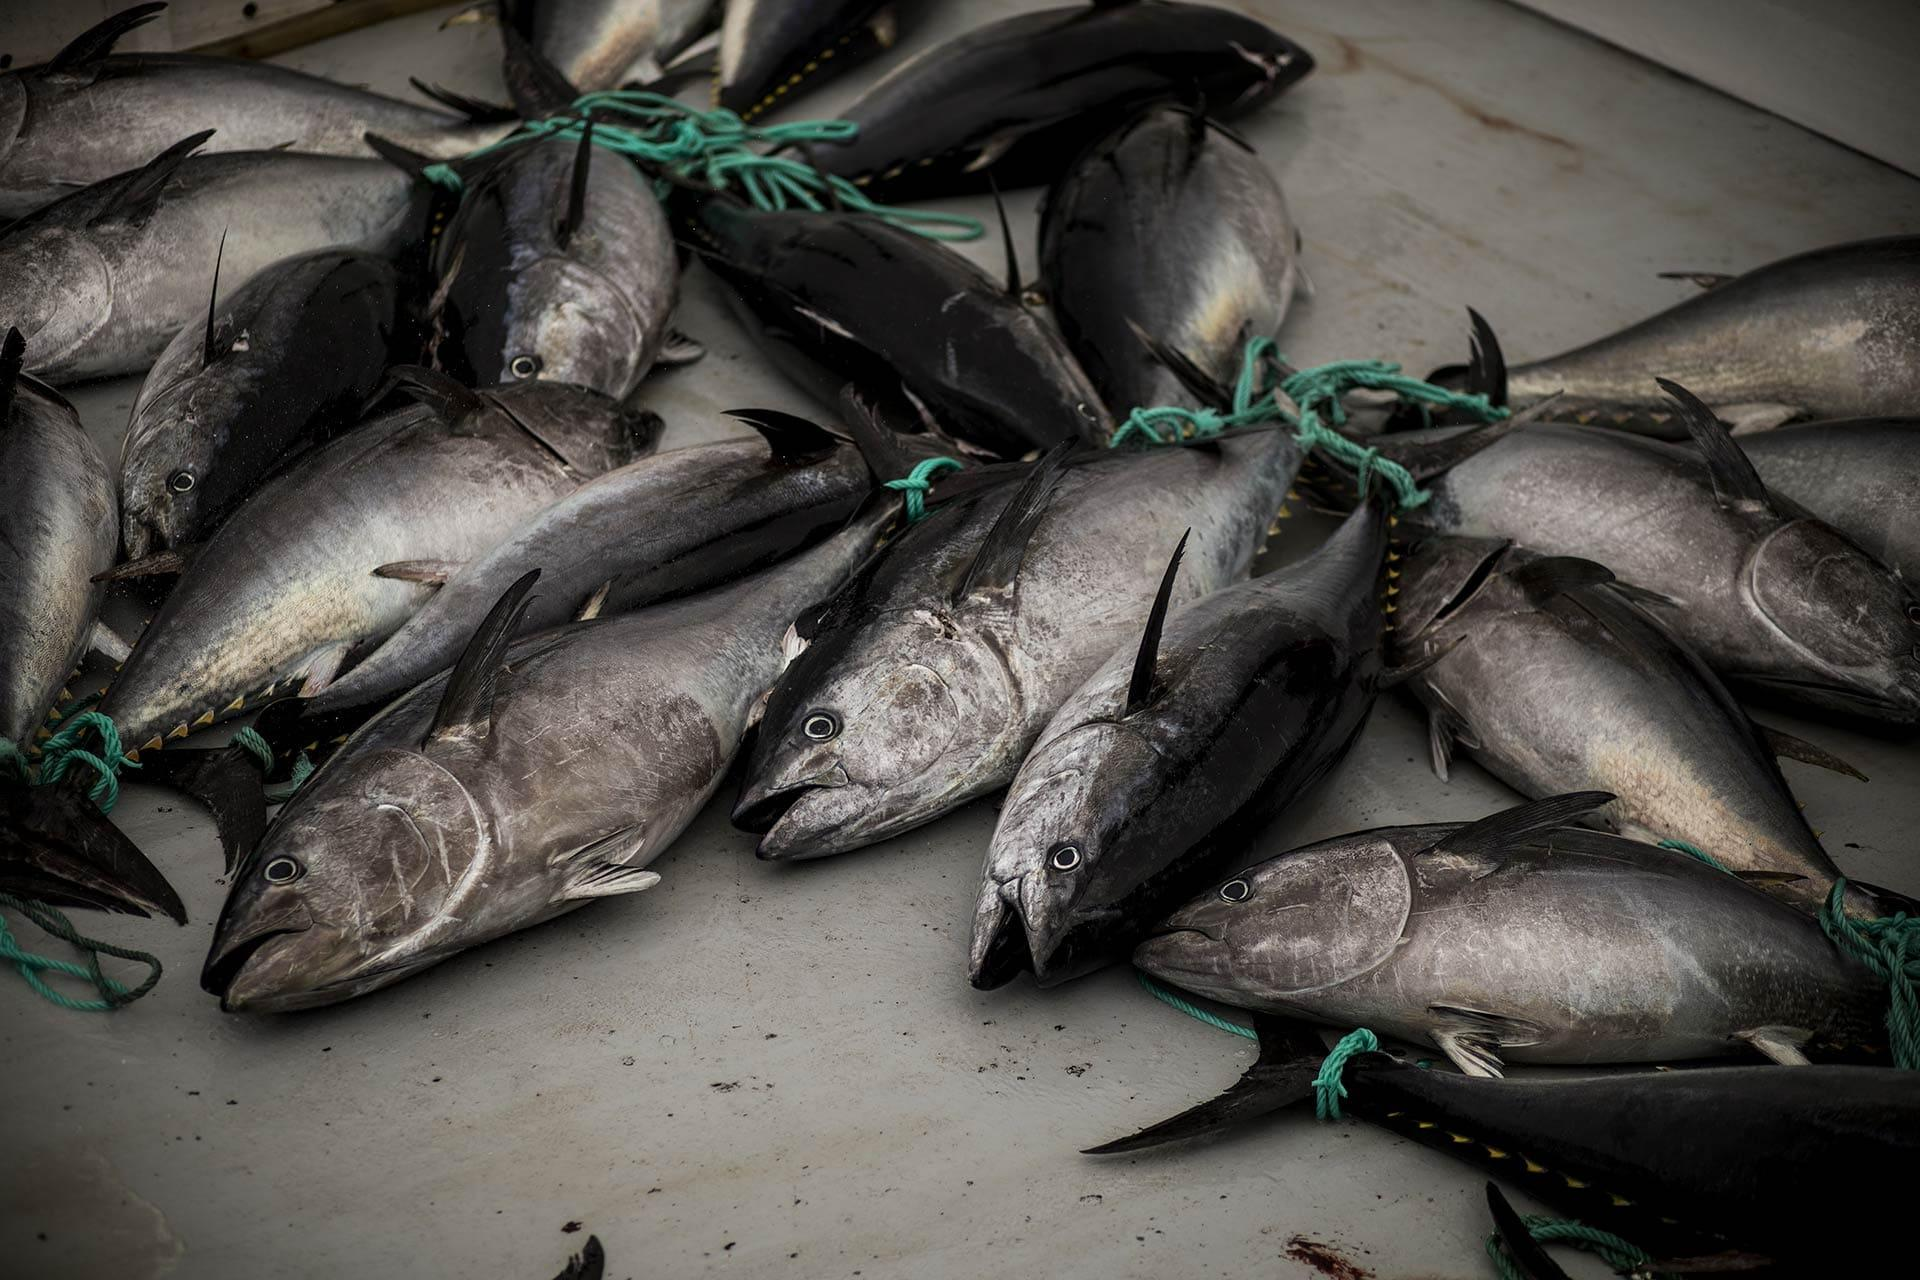 Tuna fishes laying on a boat